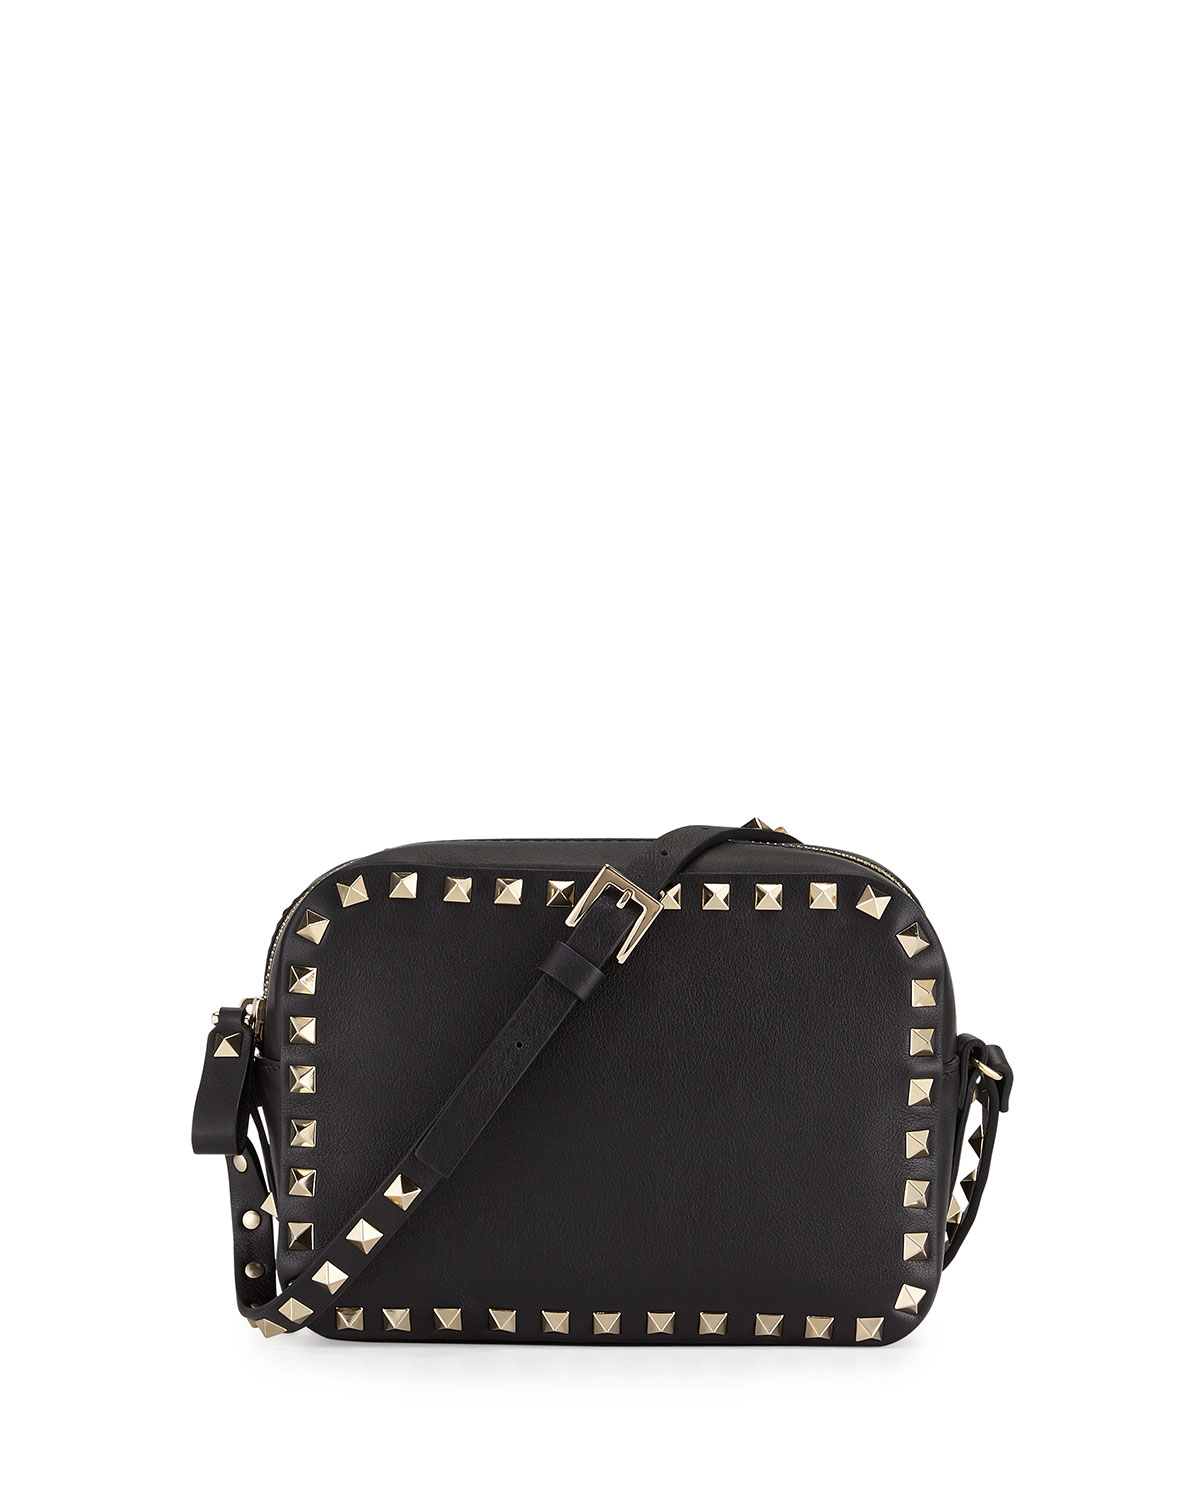 Red Valentino Rockstud Camera Small Leather Crossbody Bag, Black, Size: S